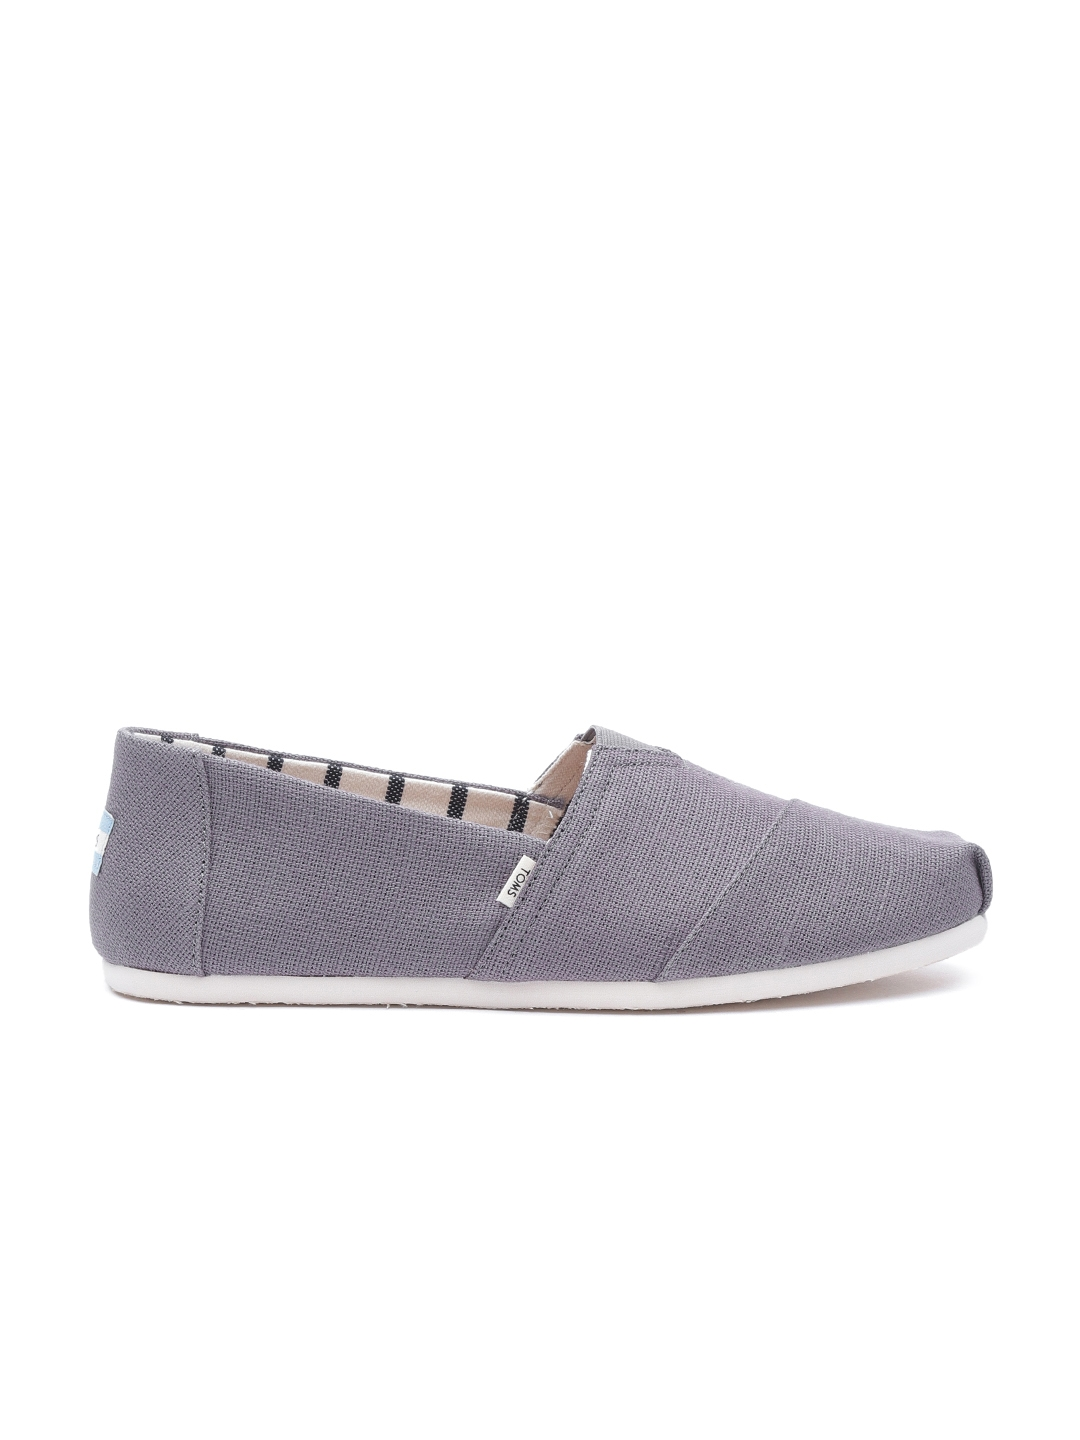 TOMS Men Grey Slip Ons - Casual Shoes